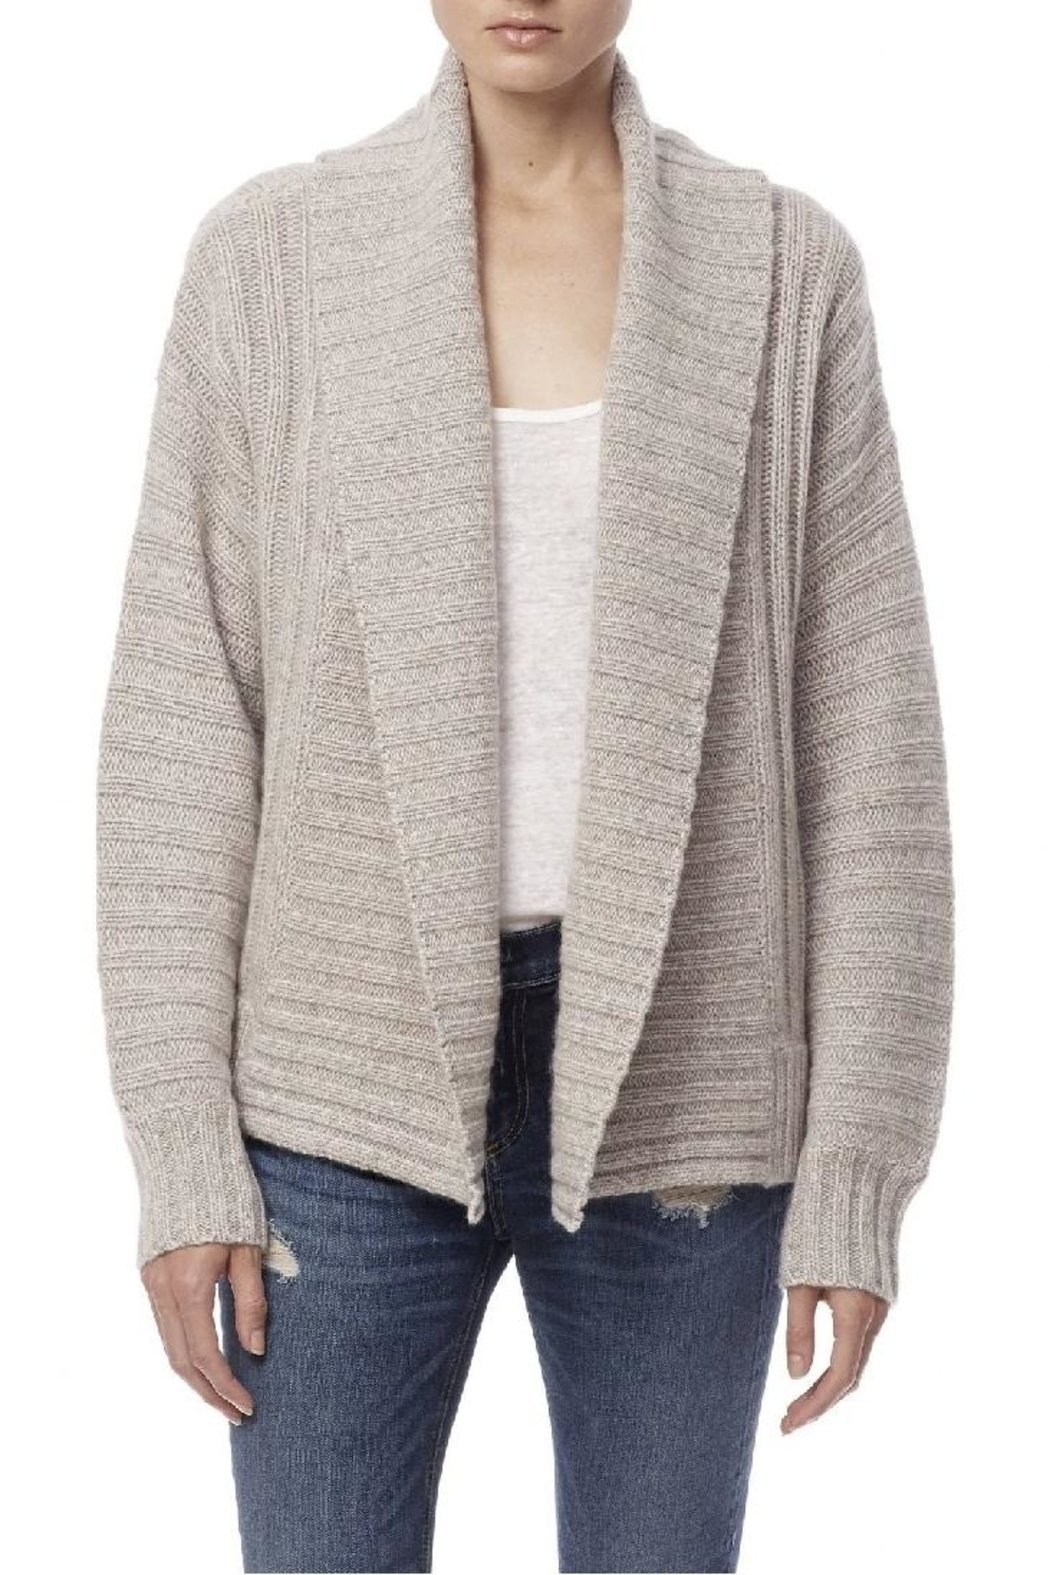 360 Cashmere Celina Shell Sweater - Main Image